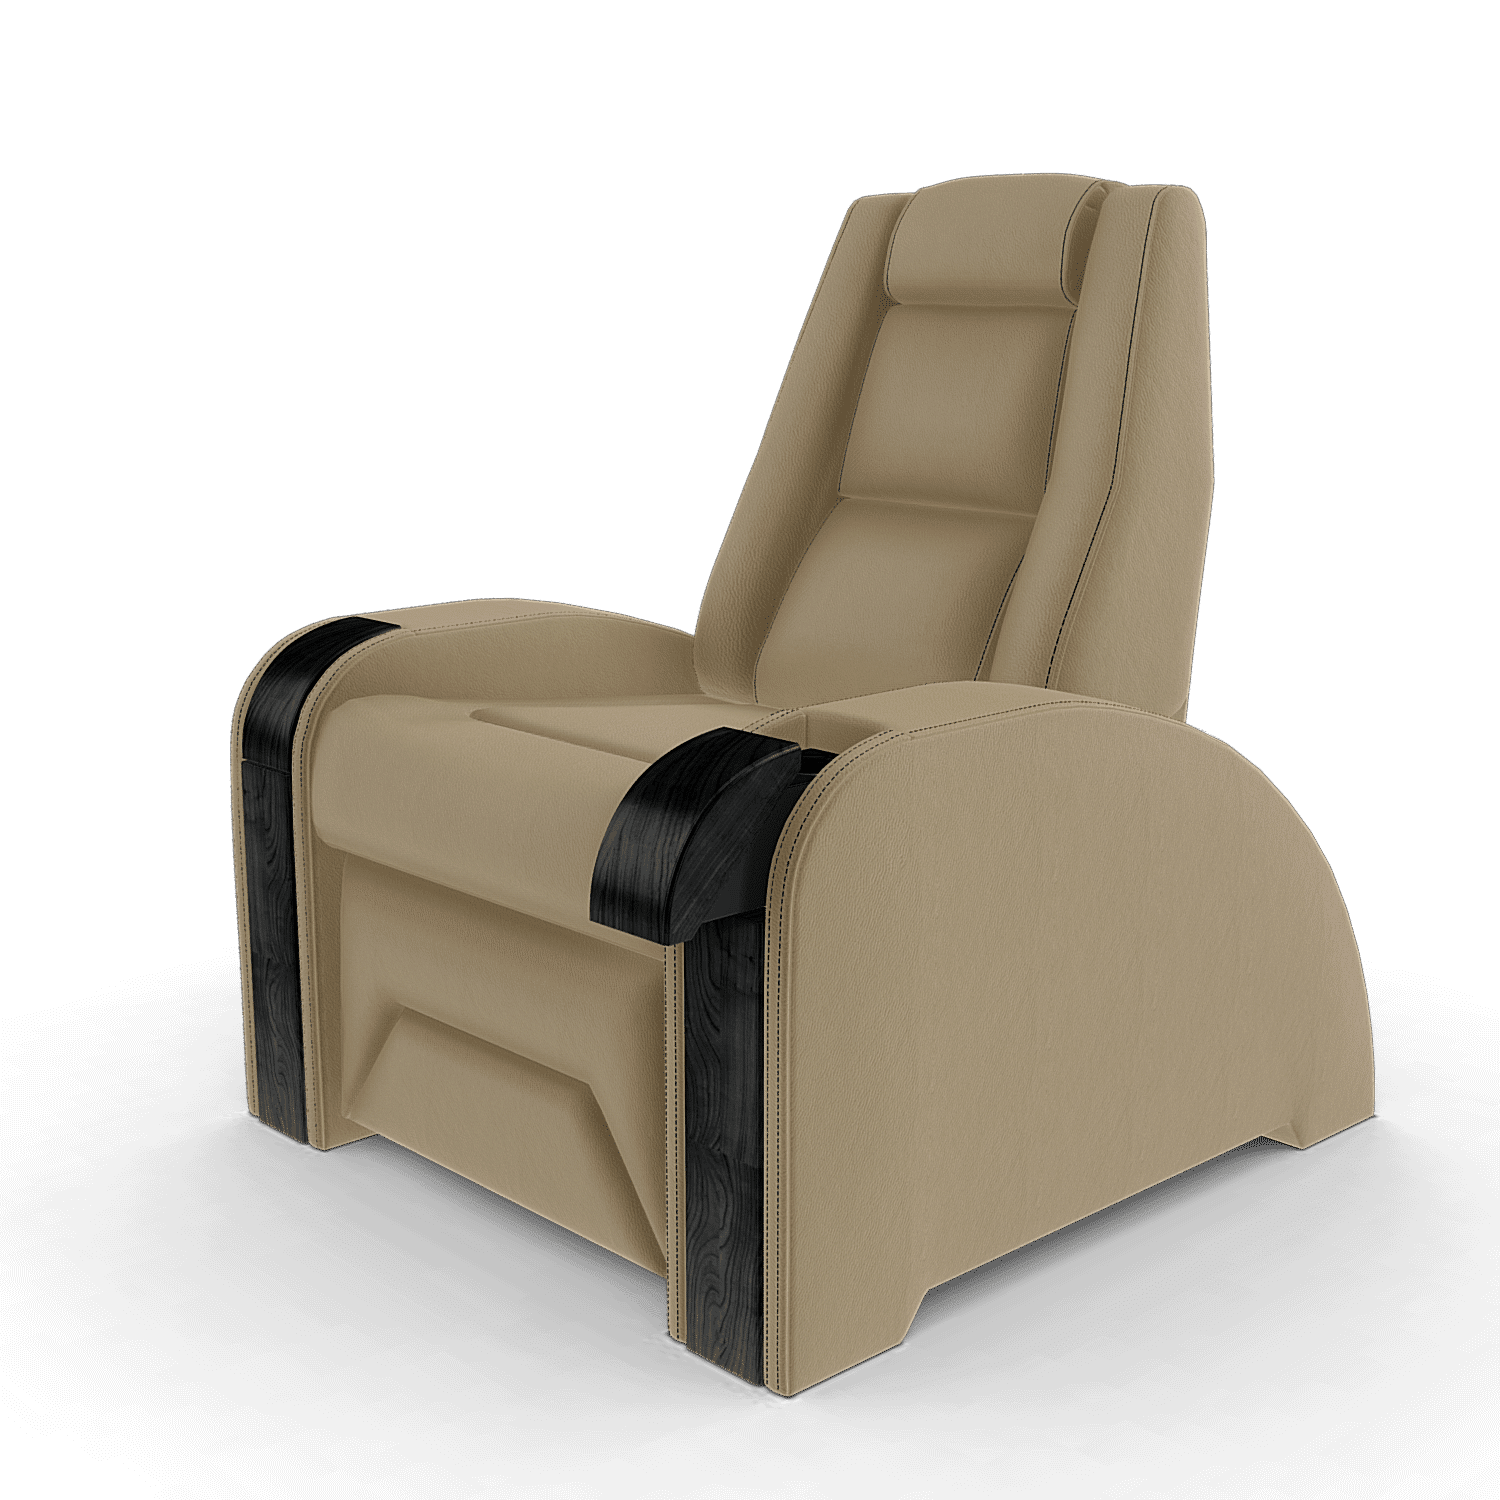 f1_cream_home_theater_seats (1)